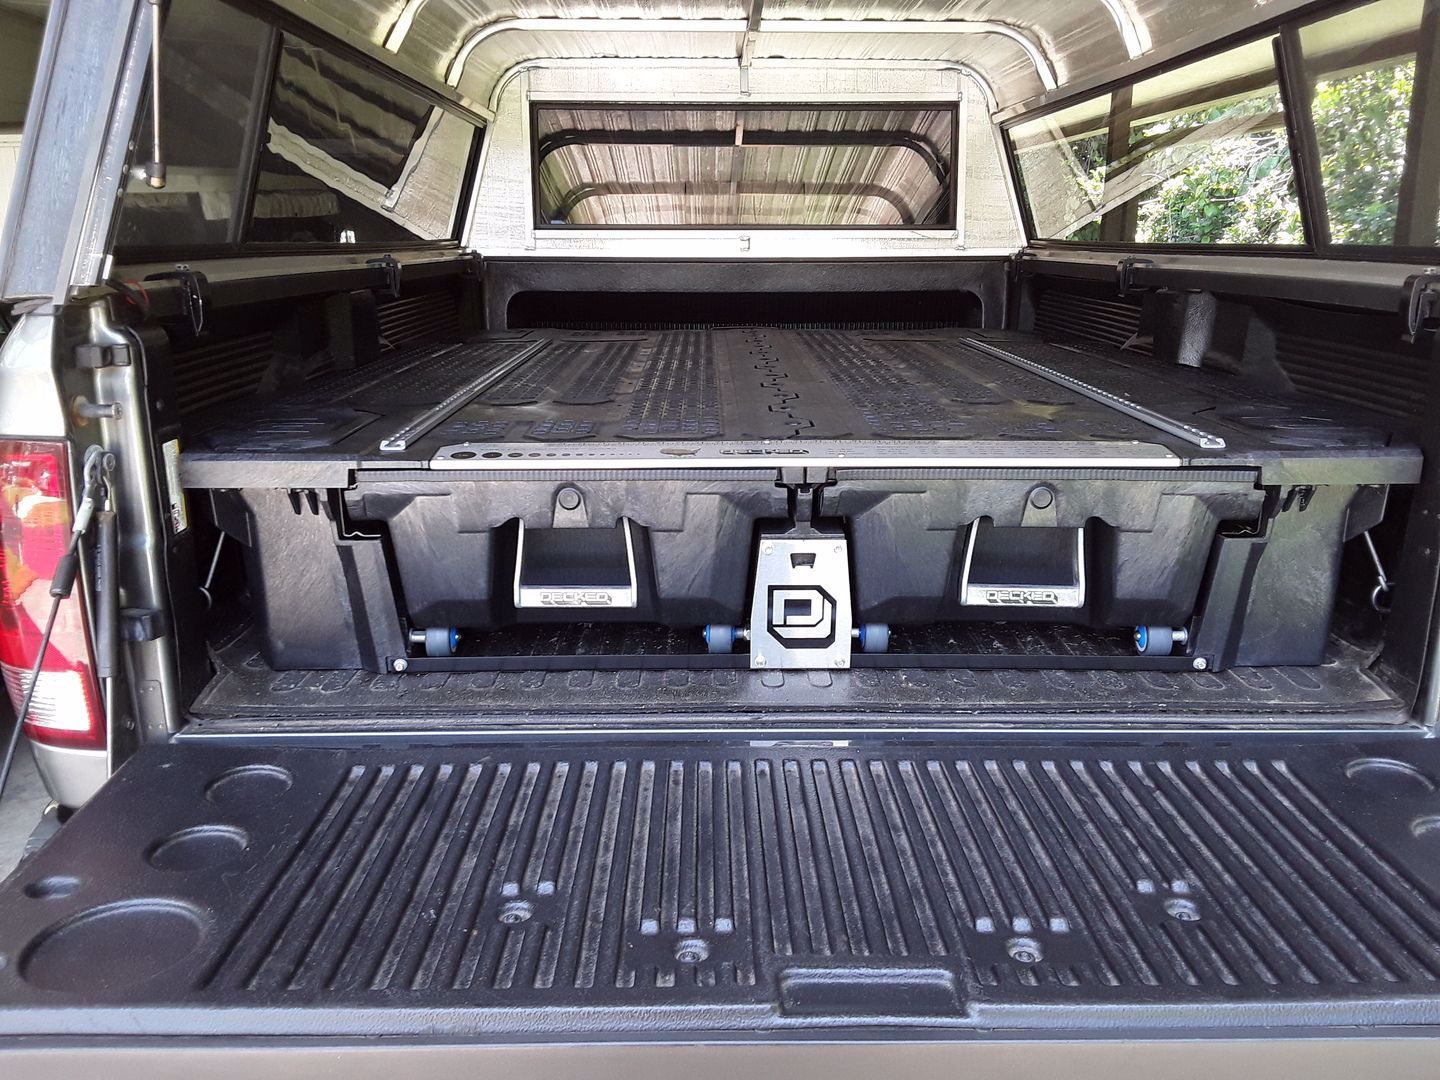 For F 150 8 Bed Length Truck Bed Decked Storage System Shop Now In 2020 Truck Bed Deck Systems Deck